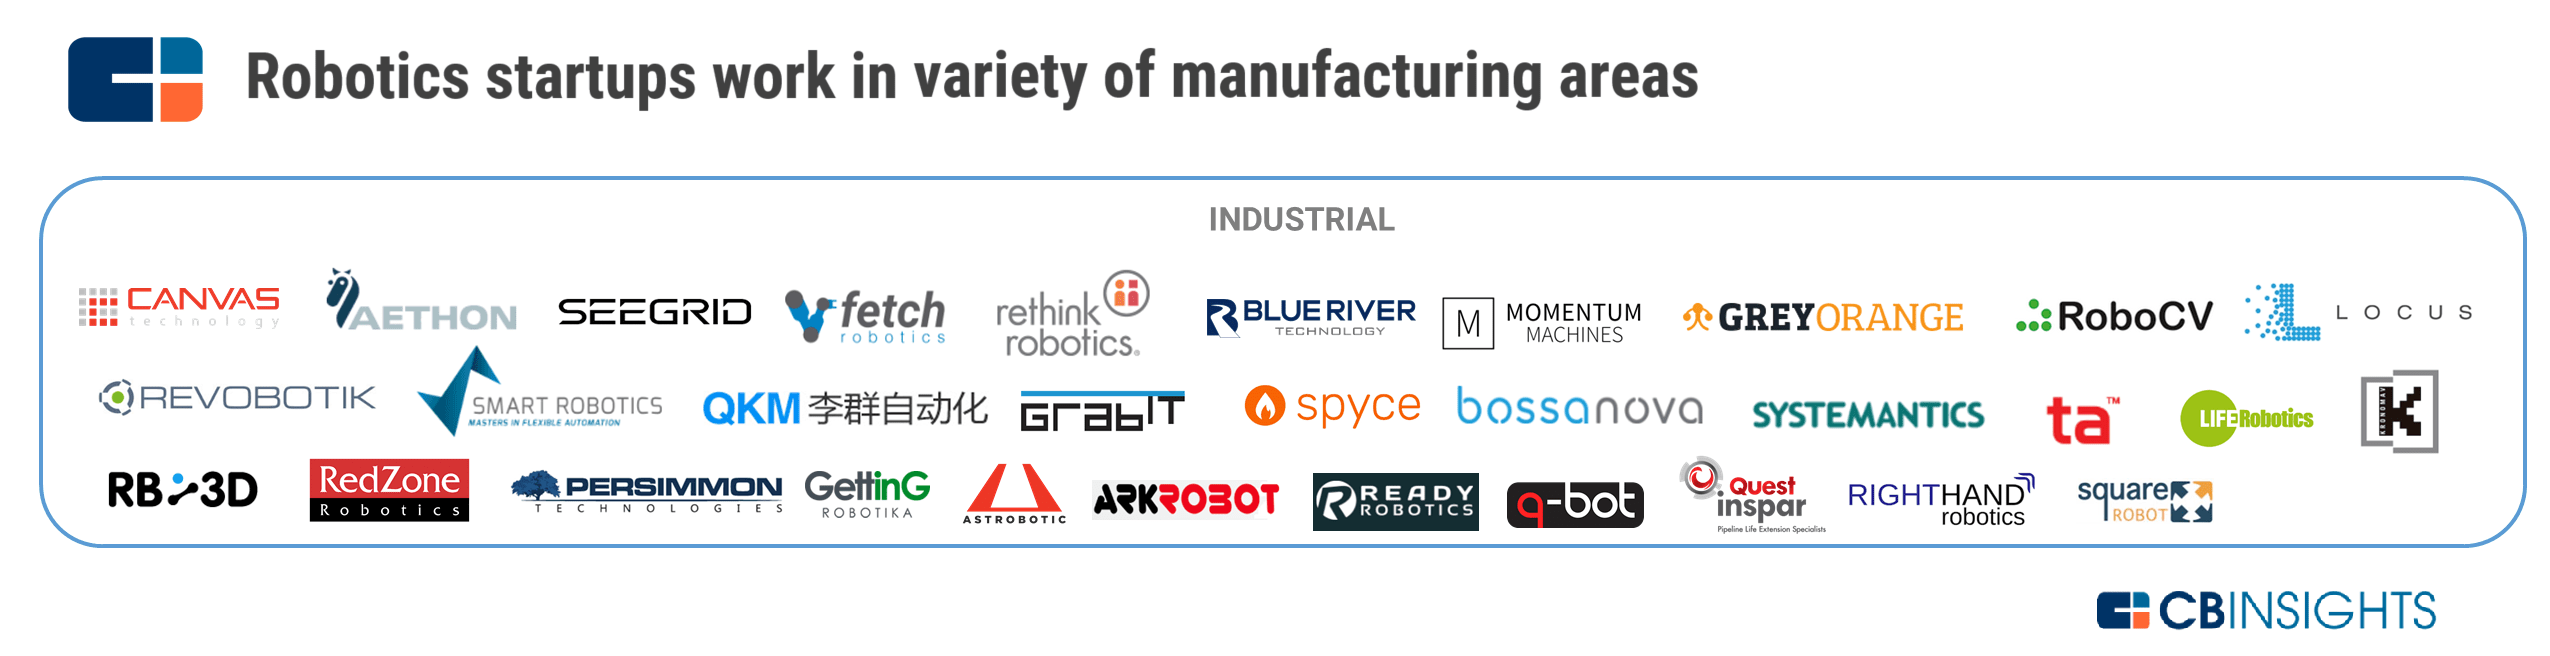 Future Factory: How Technology Is Transforming Manufacturing